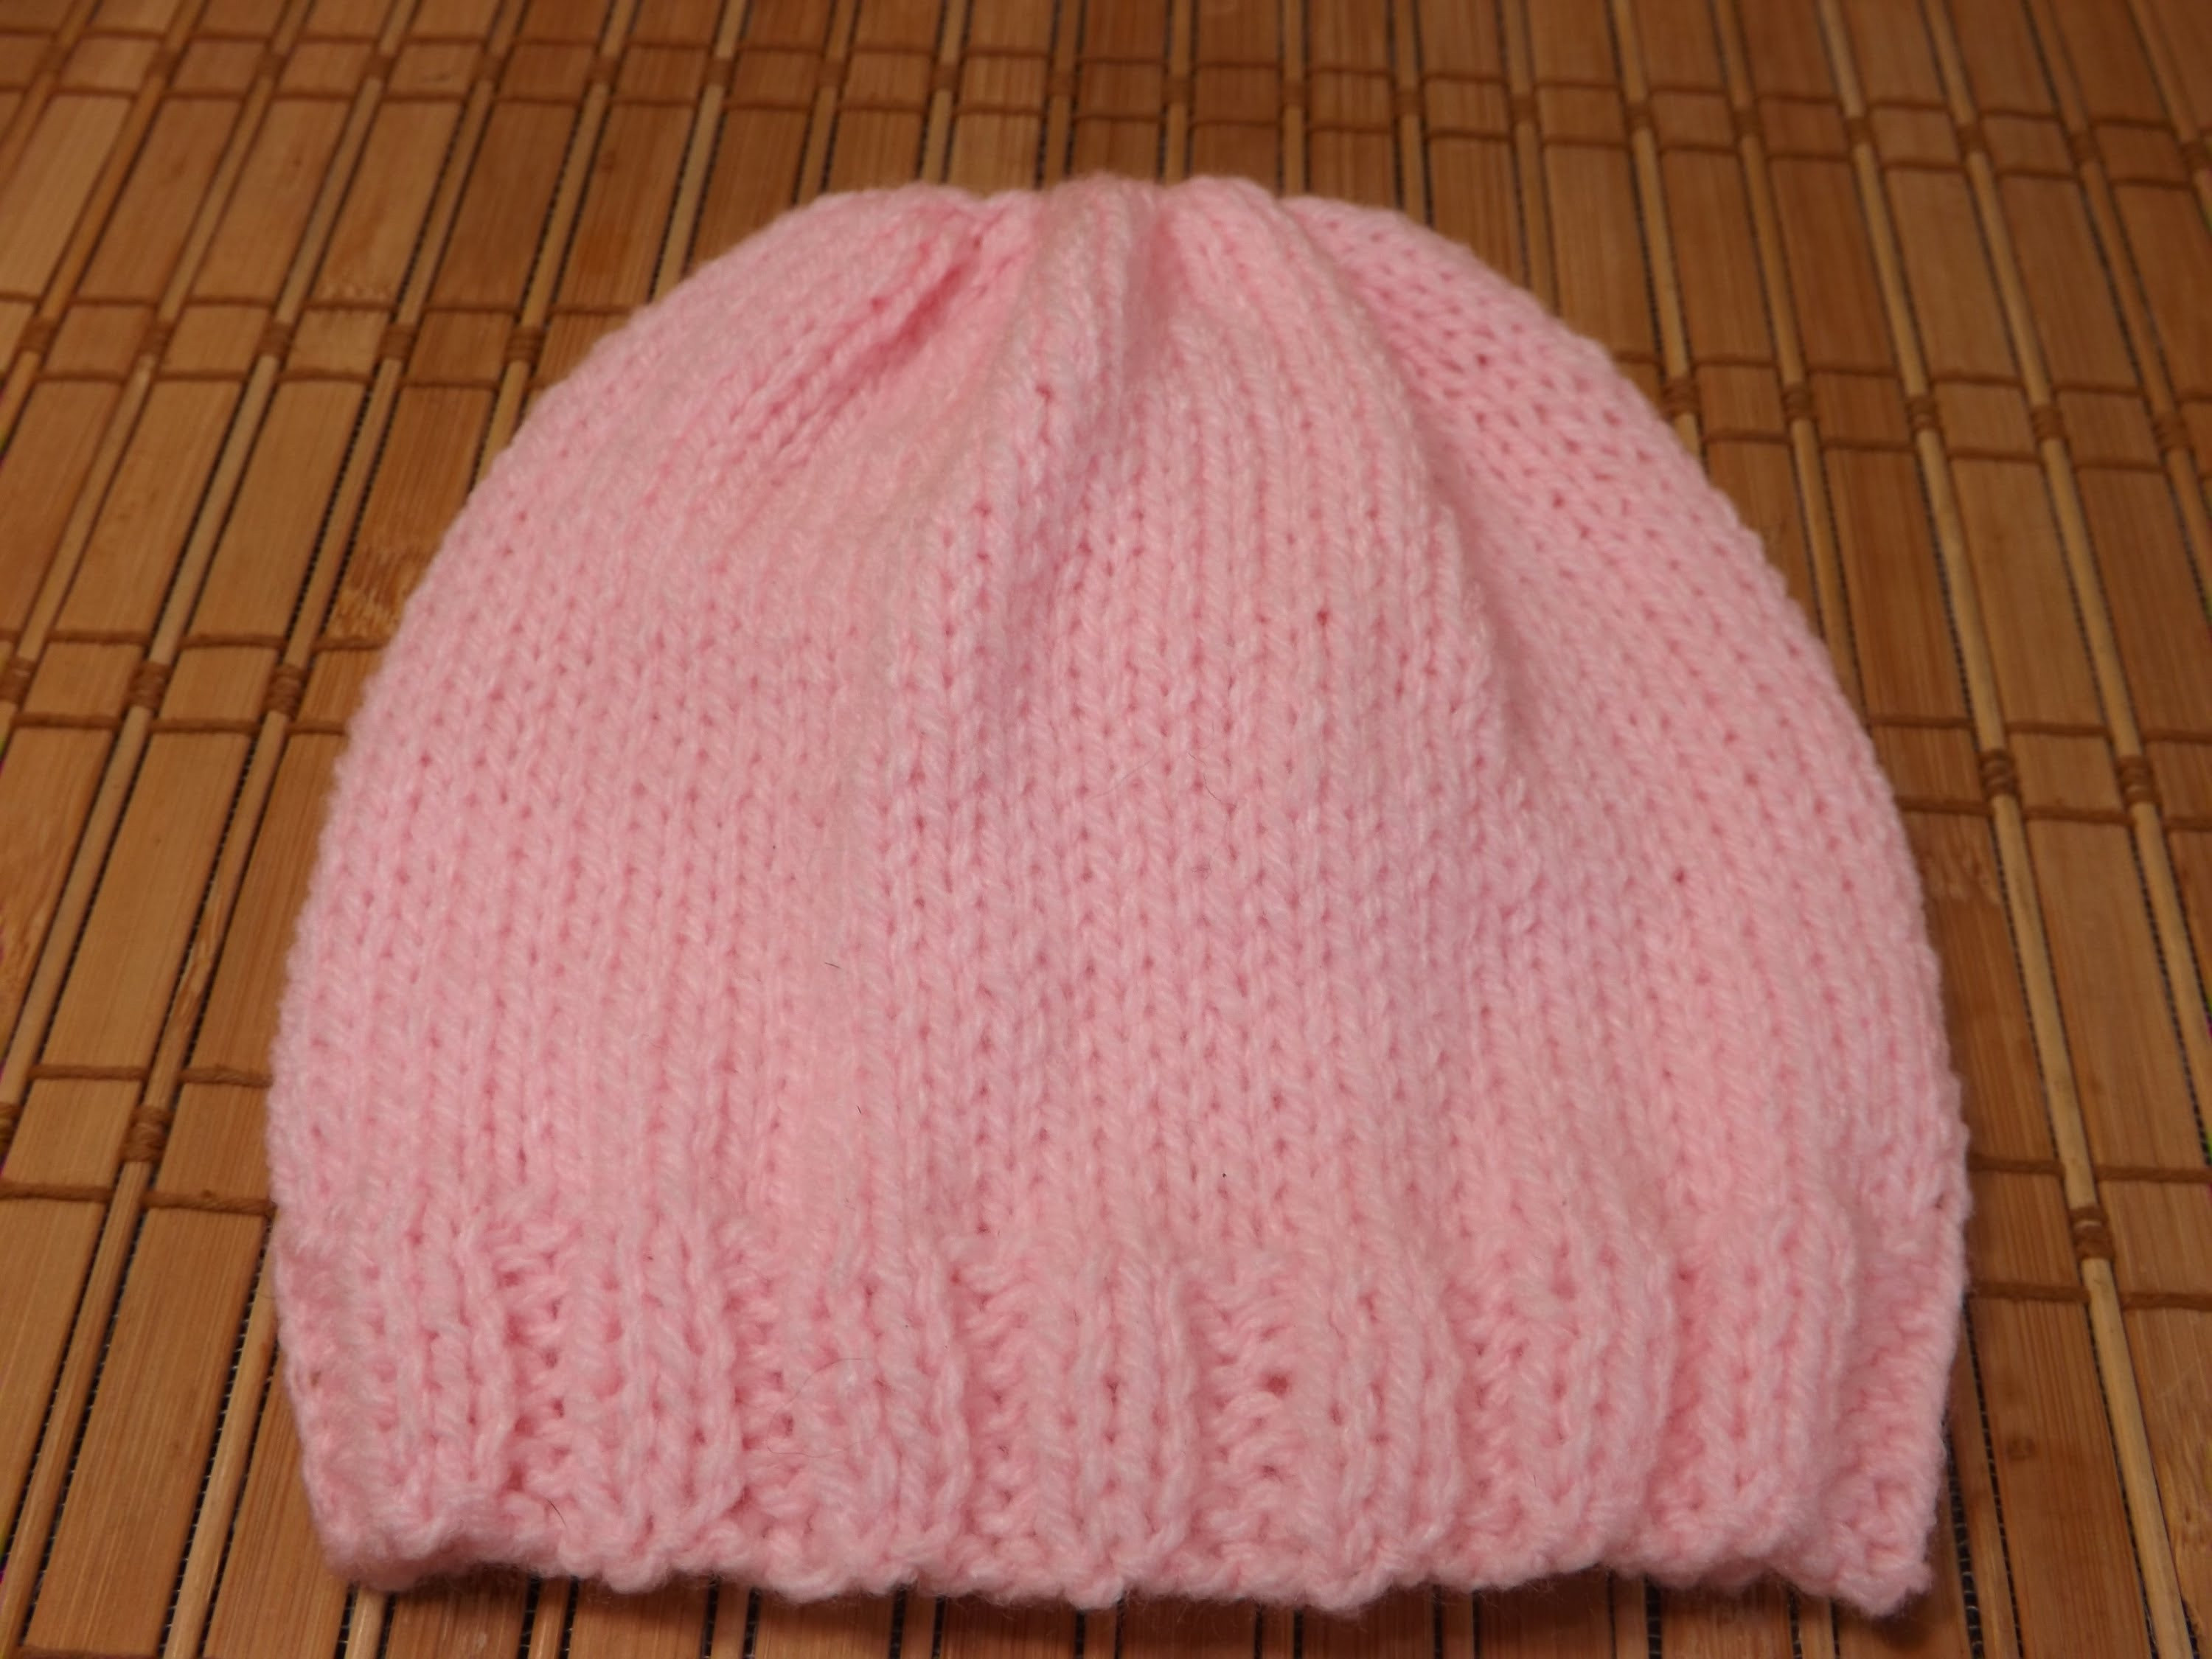 Baby Hat Knitting Pattern Inspirational Free Easy Knitting Patterns for Beginners Hats Of New 44 Pictures Baby Hat Knitting Pattern